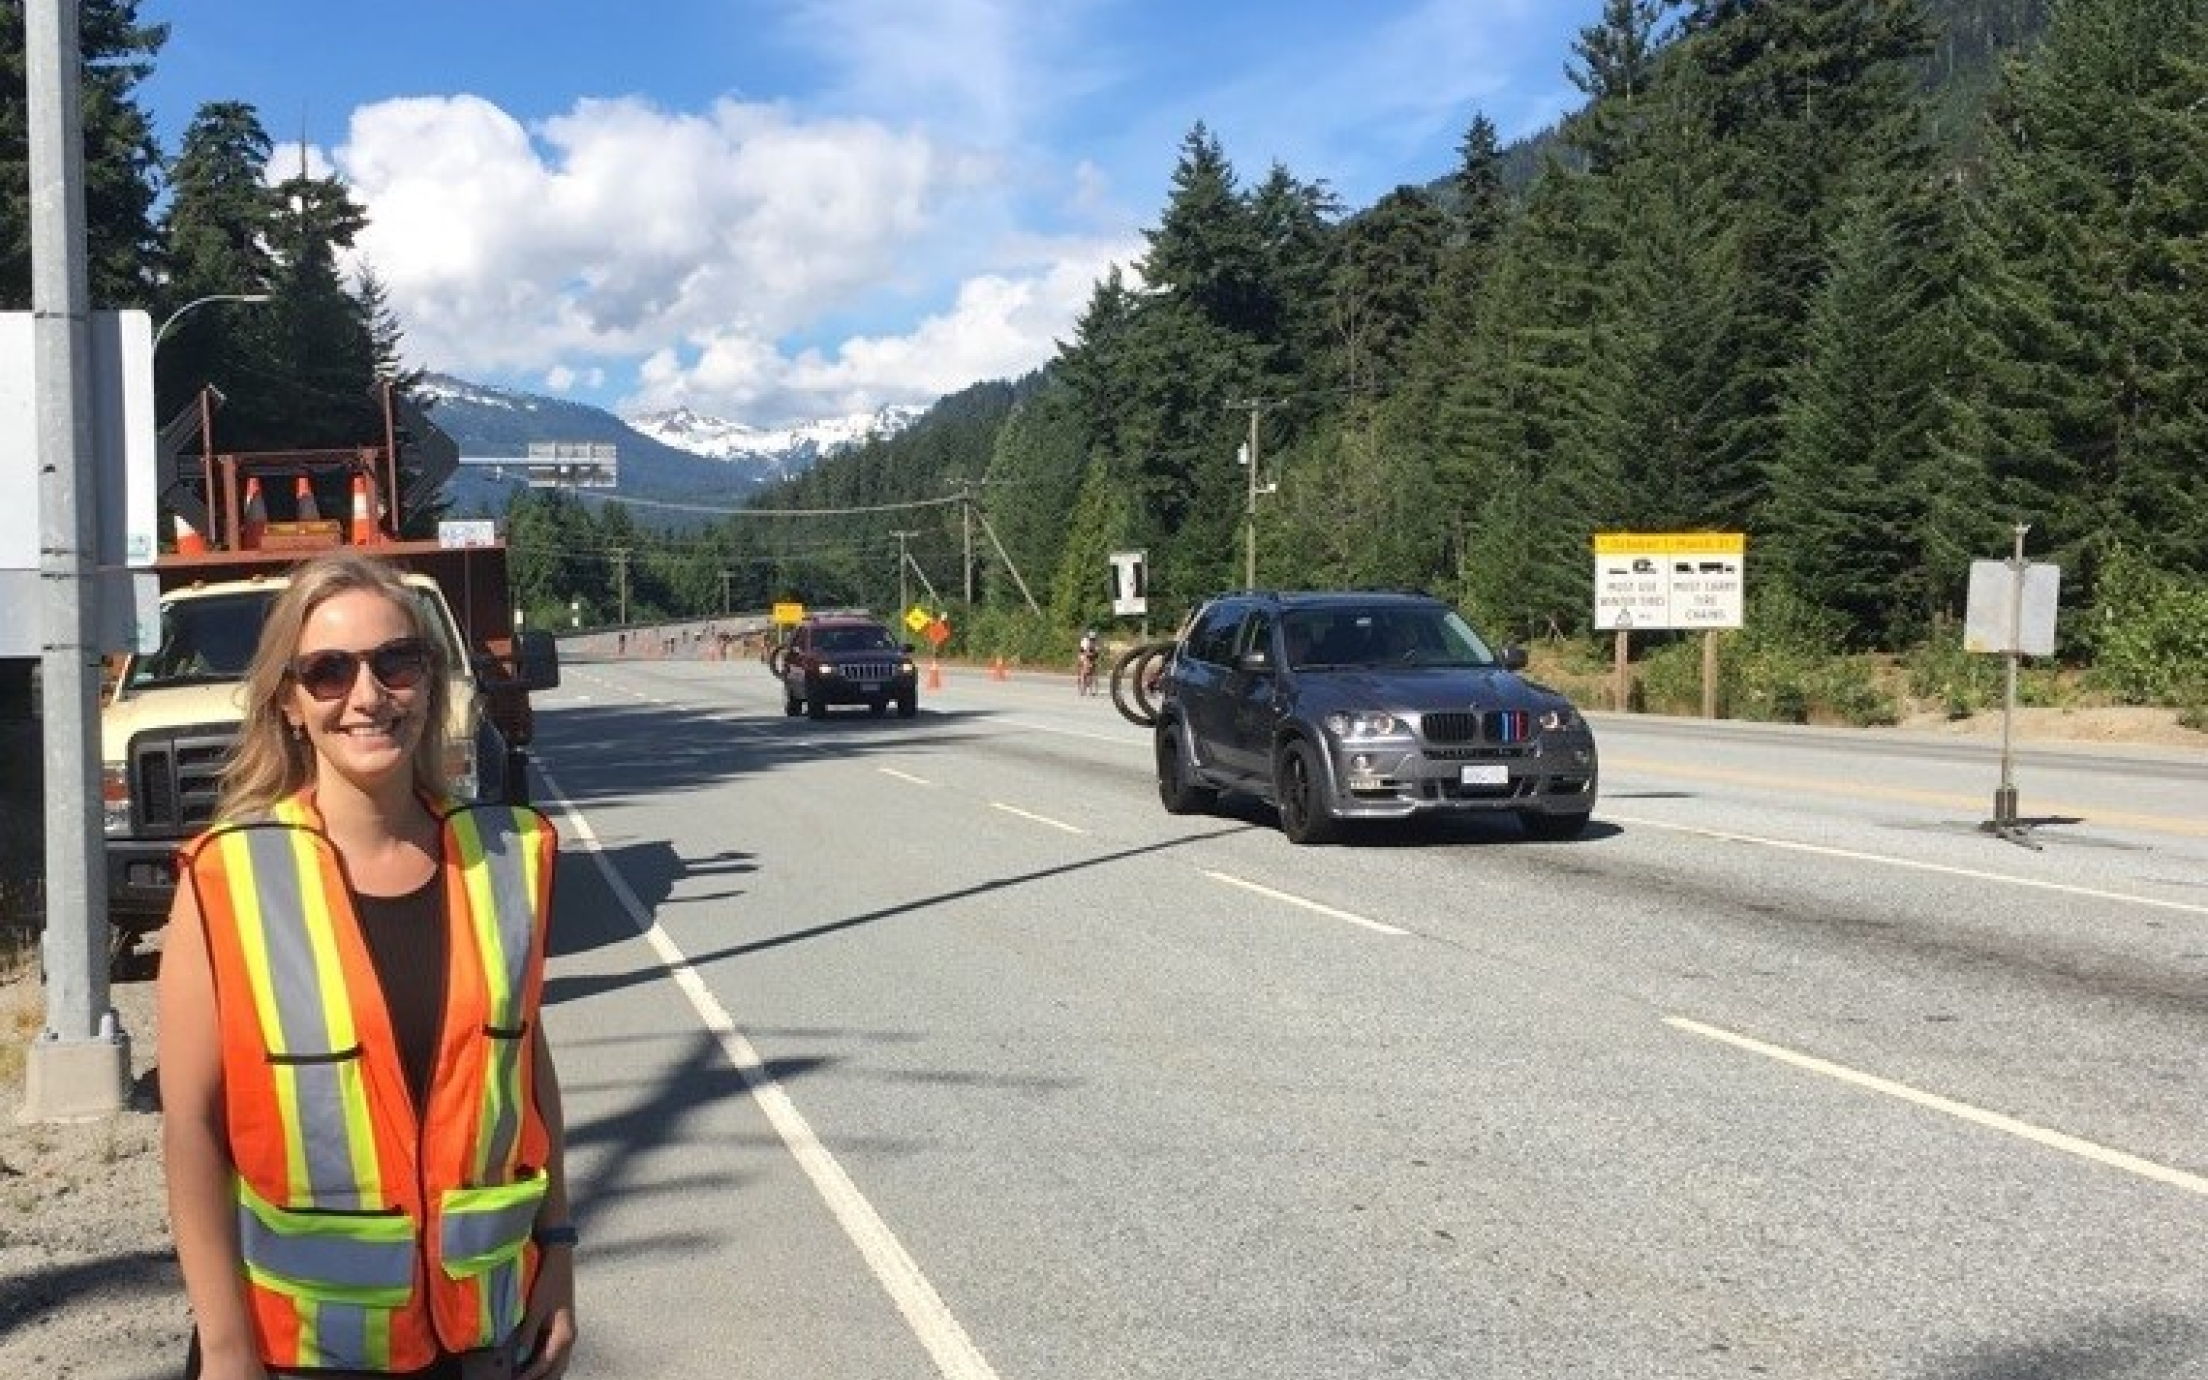 Amy Barker near Whistler - working during a road cycling event (Ironman).